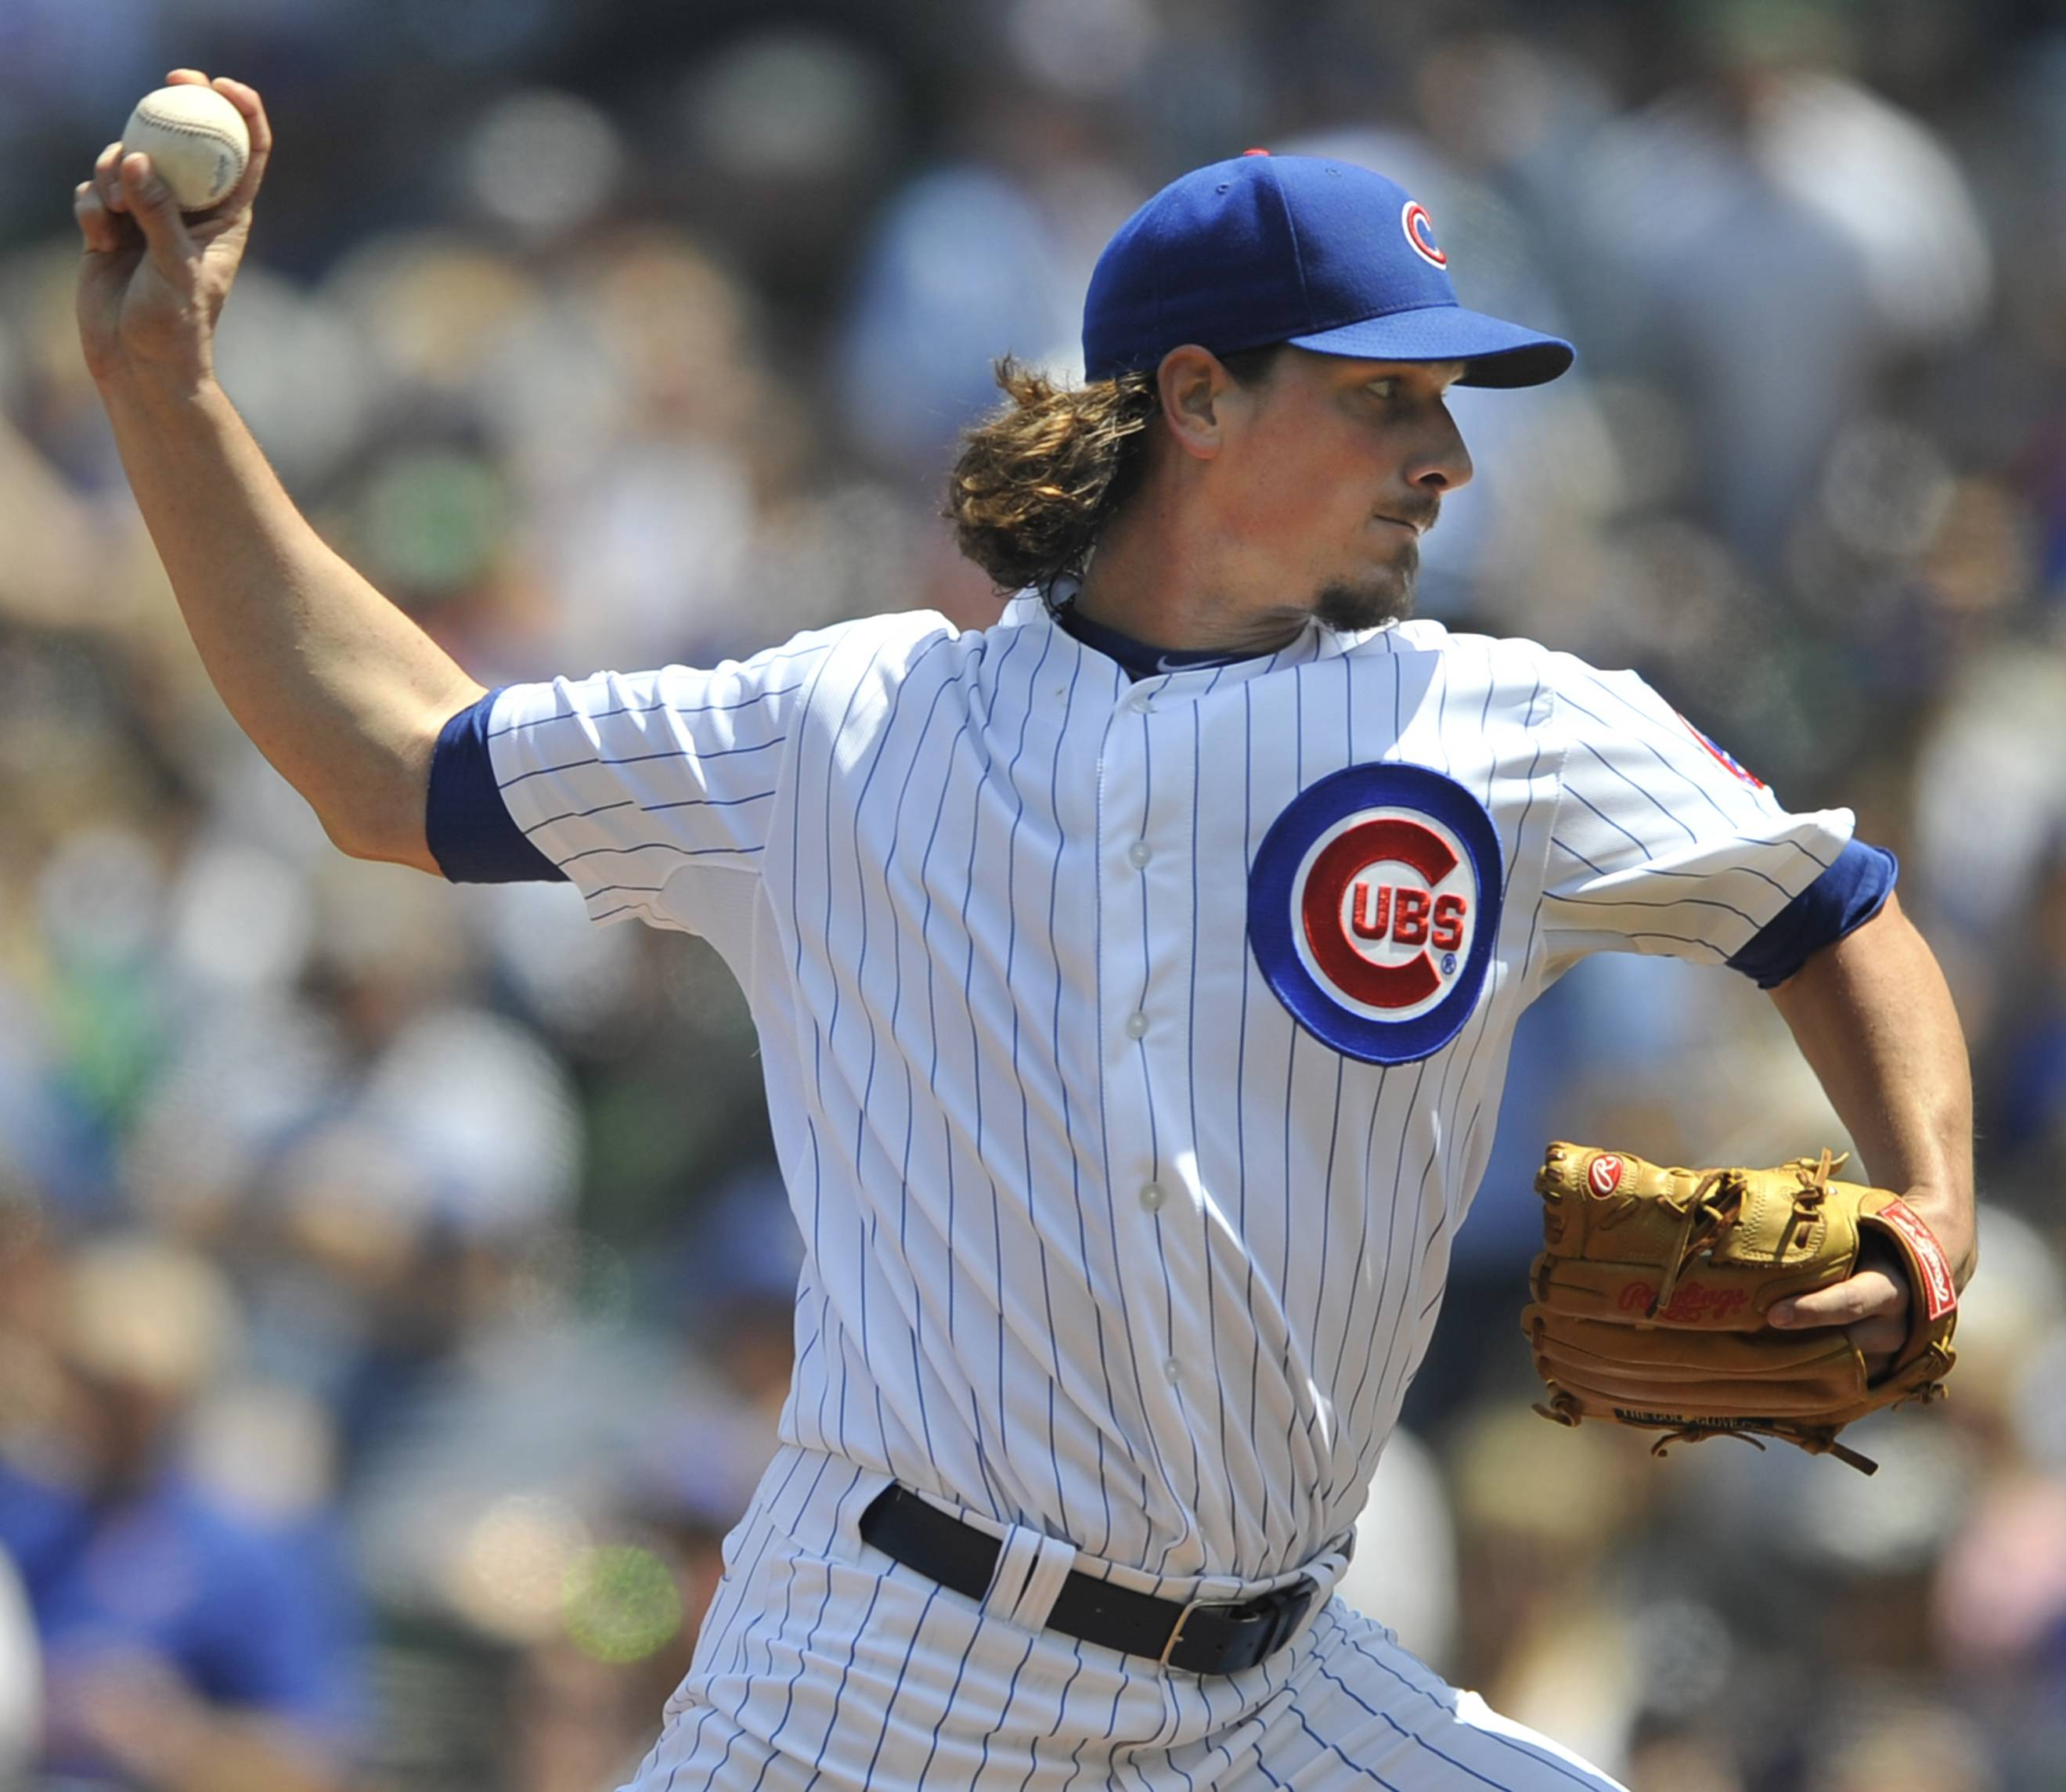 How long will Samardzija stick around?